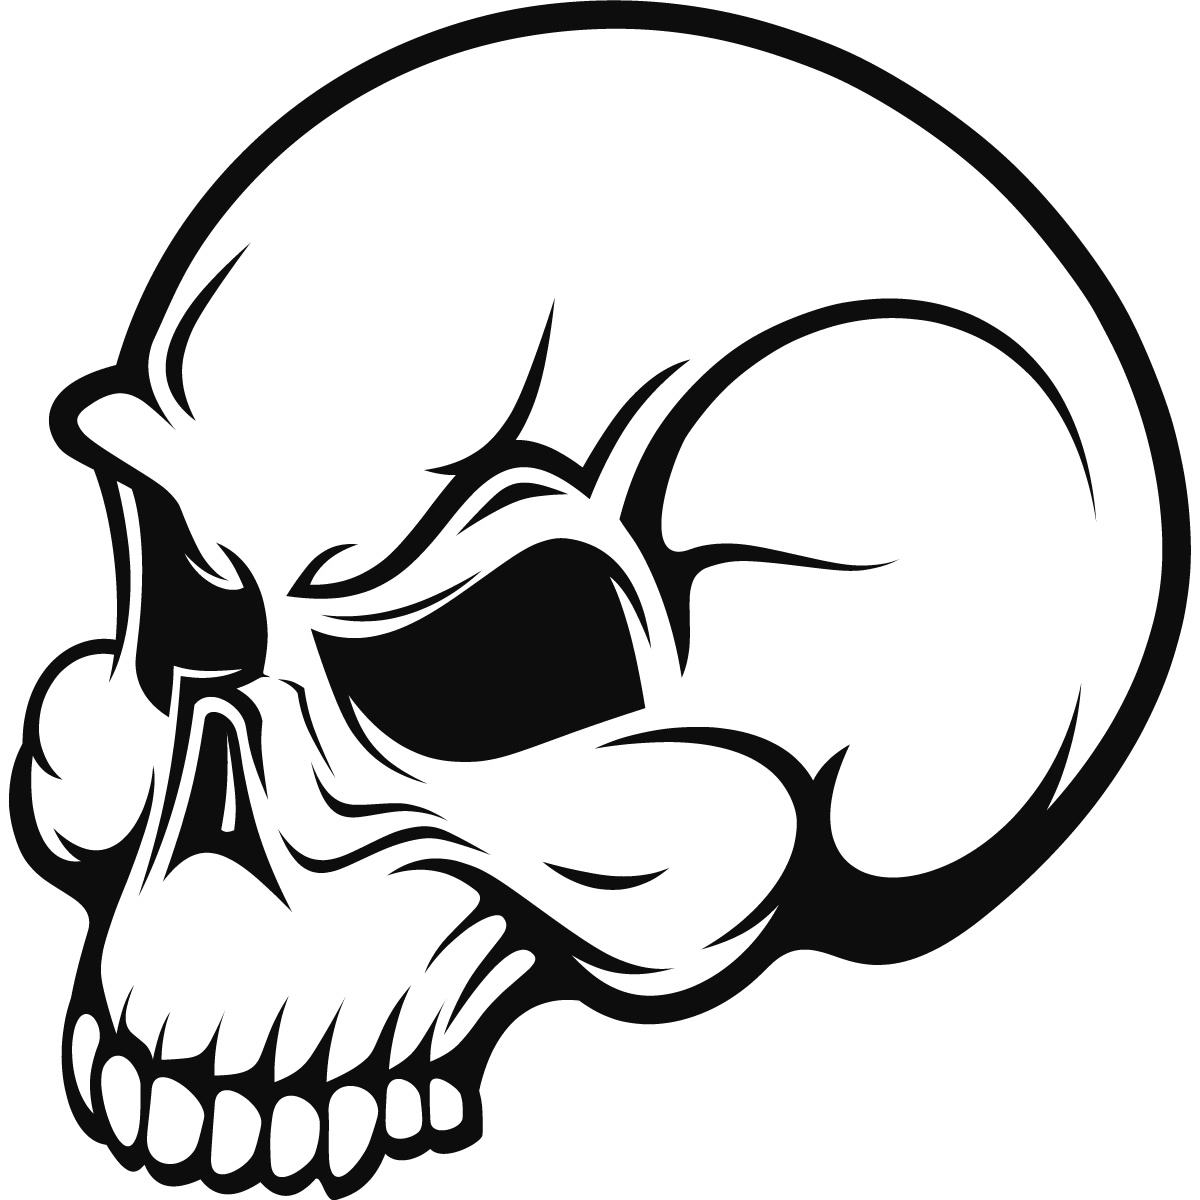 1200x1200 Drawings Of Really Scary Skulls Skull Drawings Pics Free